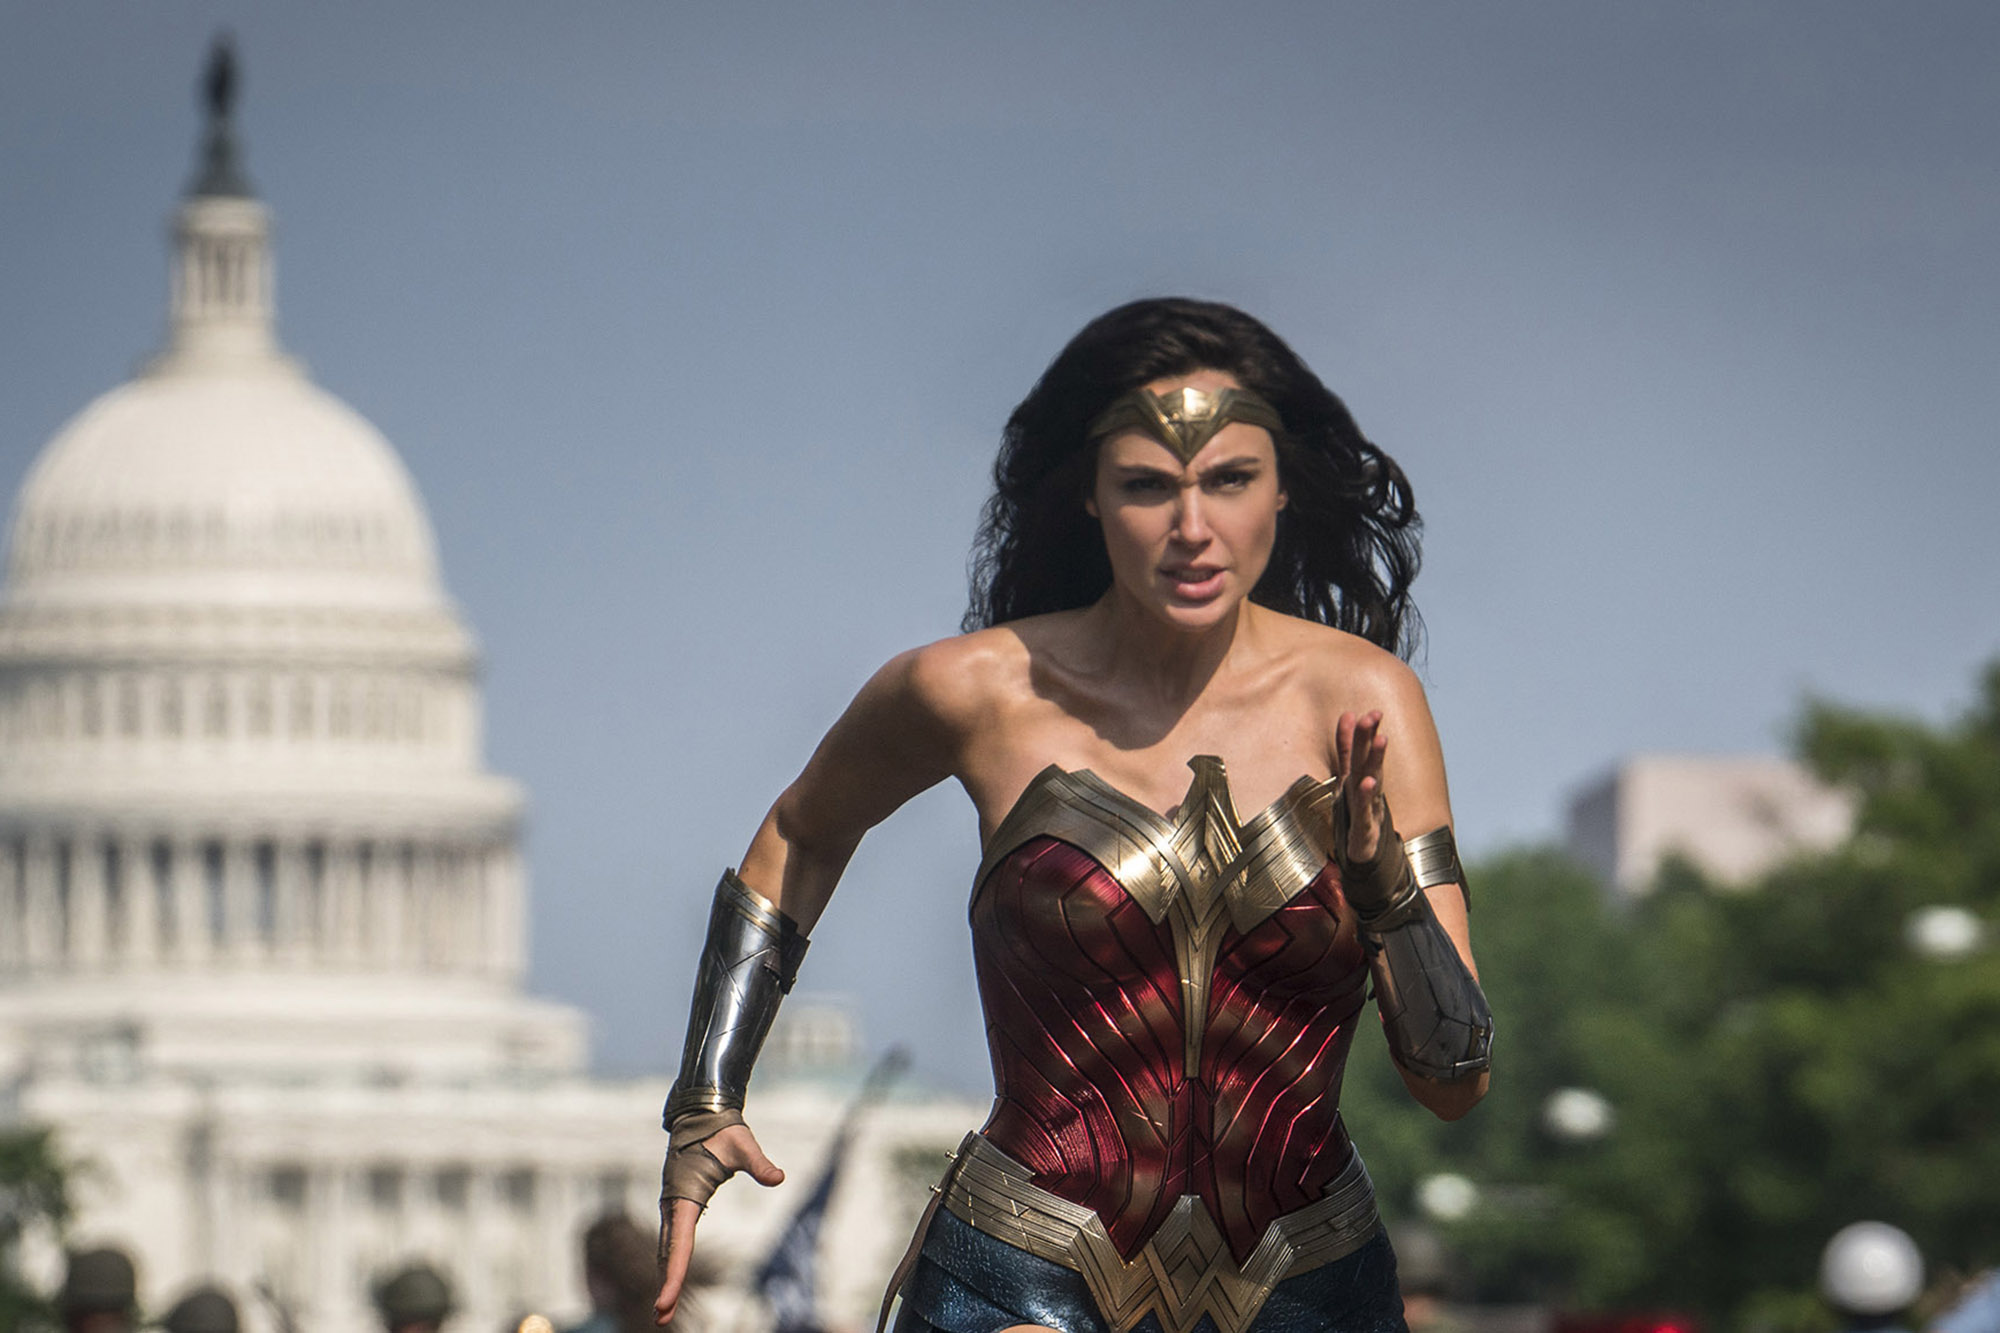 'Wonder Woman 1984' to premiere on HBO Max, theaters next month